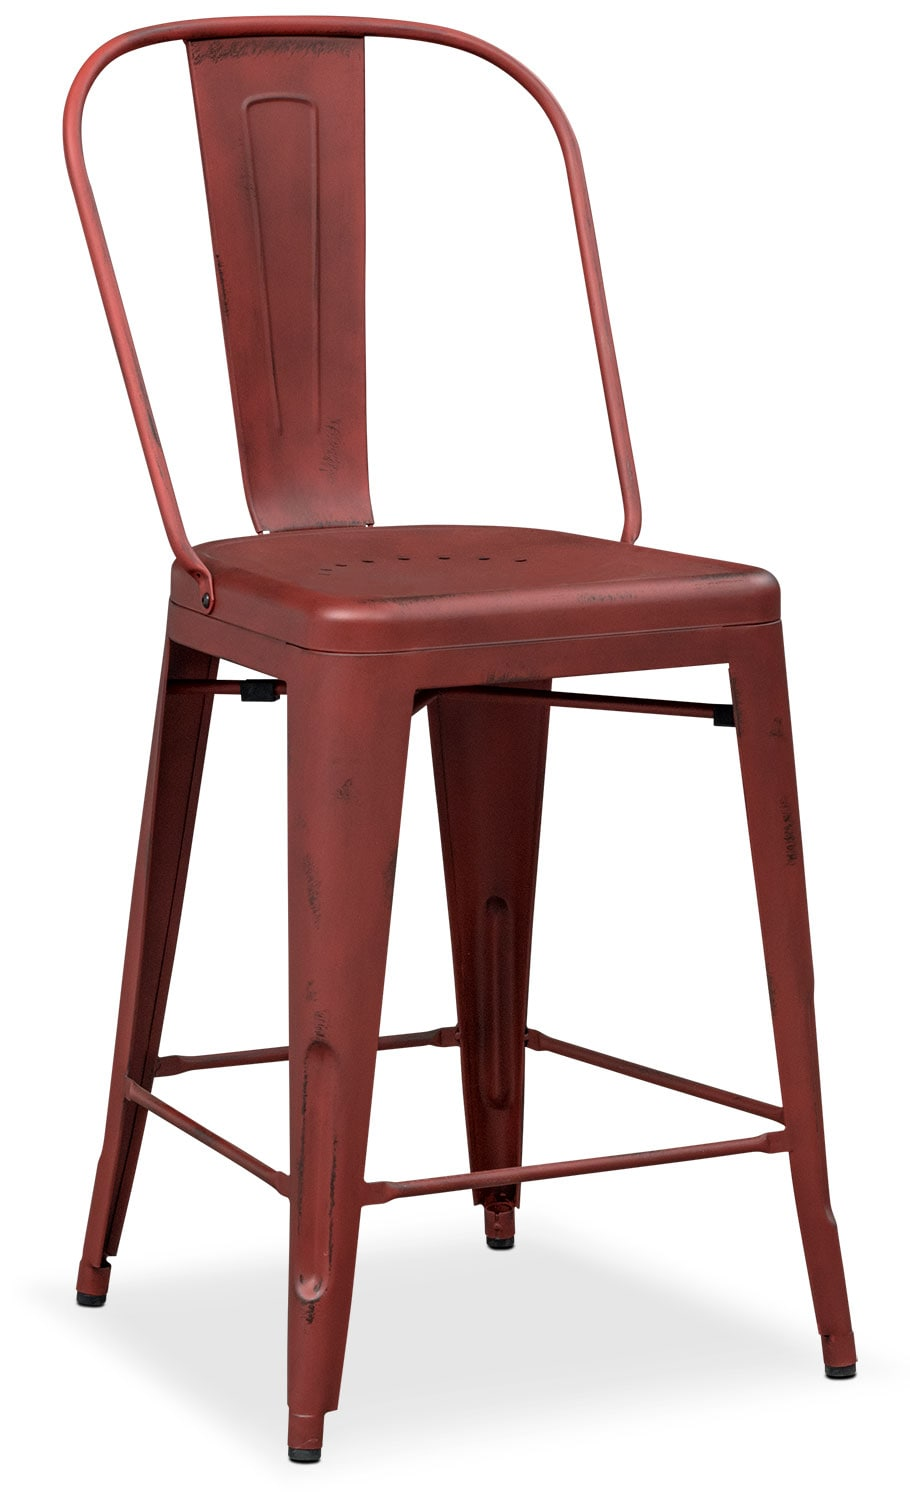 Olin Splat-Back Barstool - Red